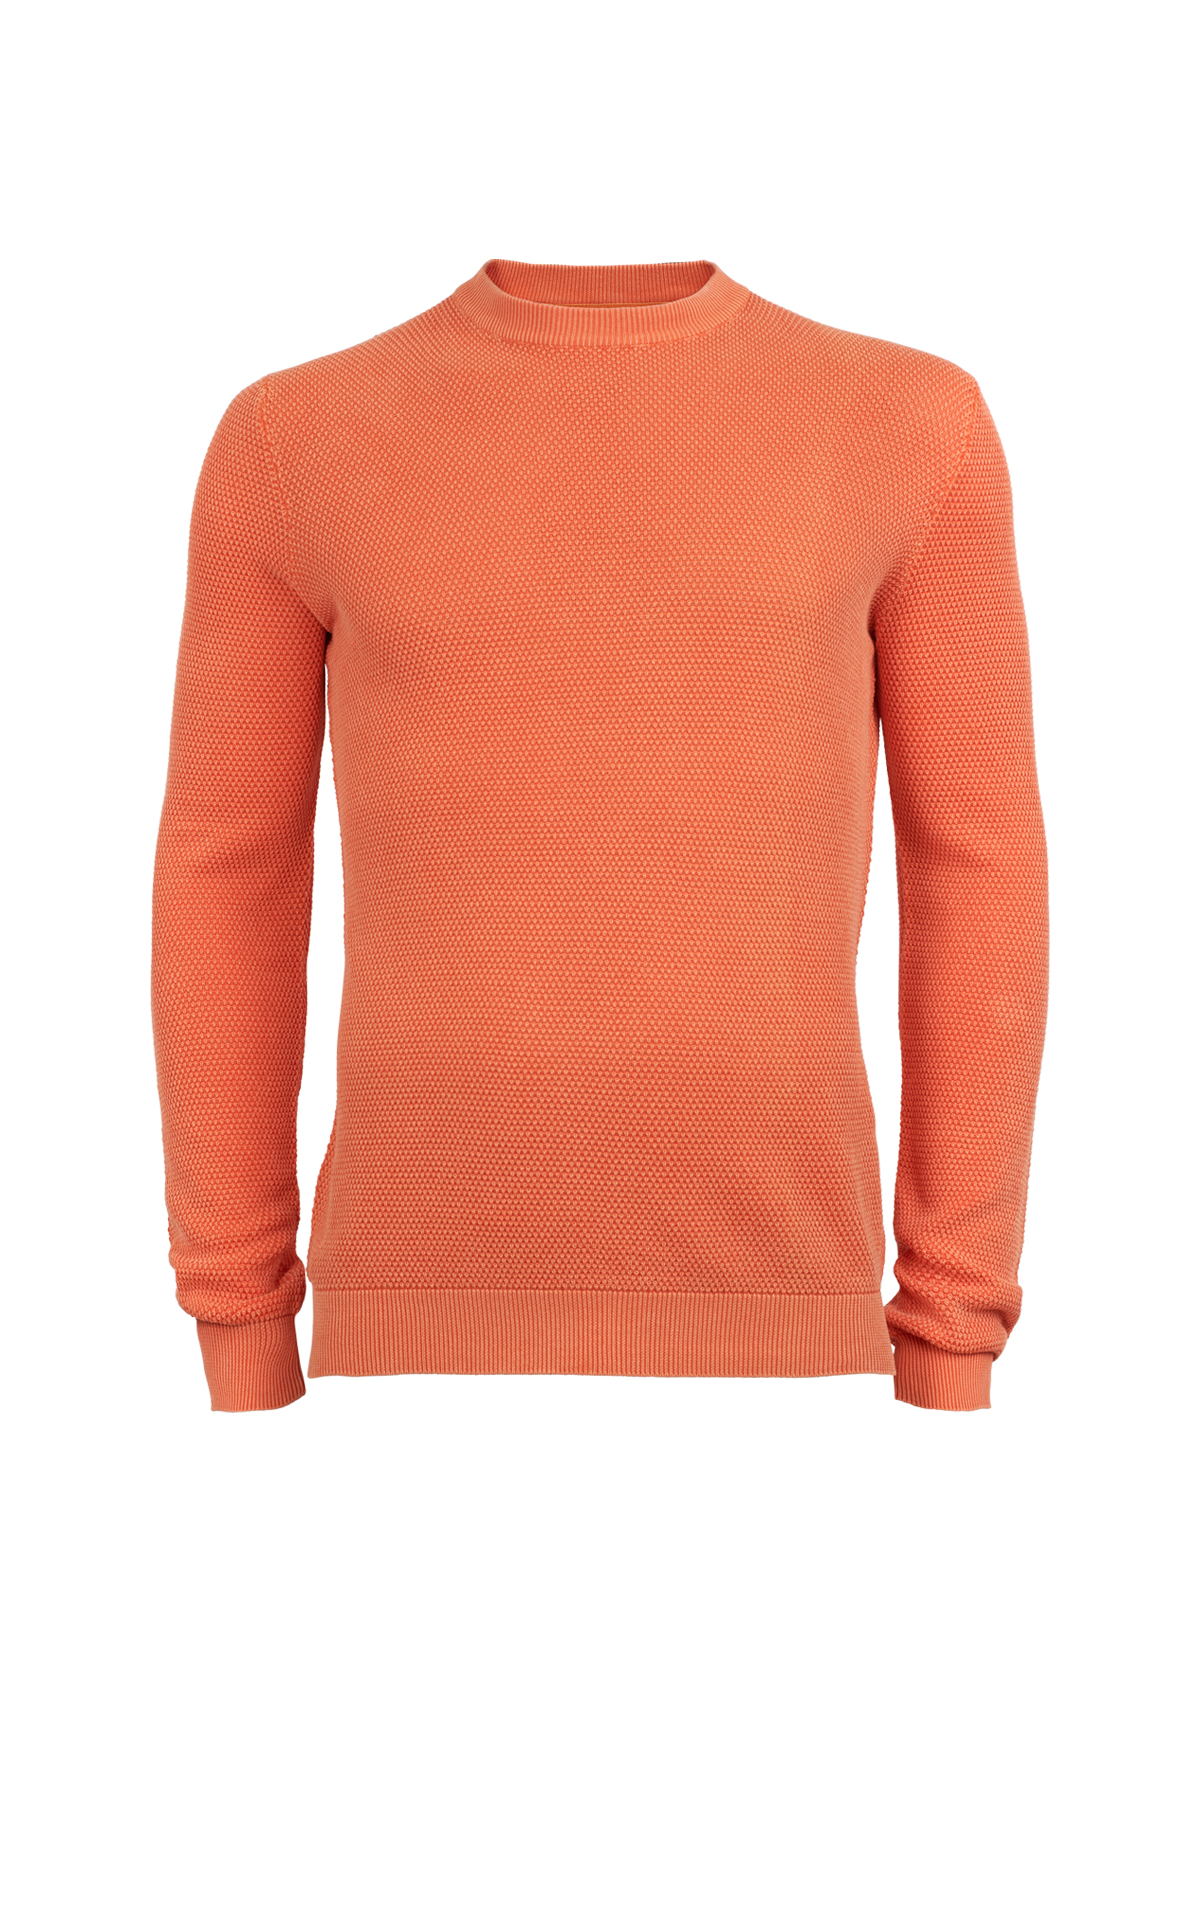 Orange sweater El Ganso